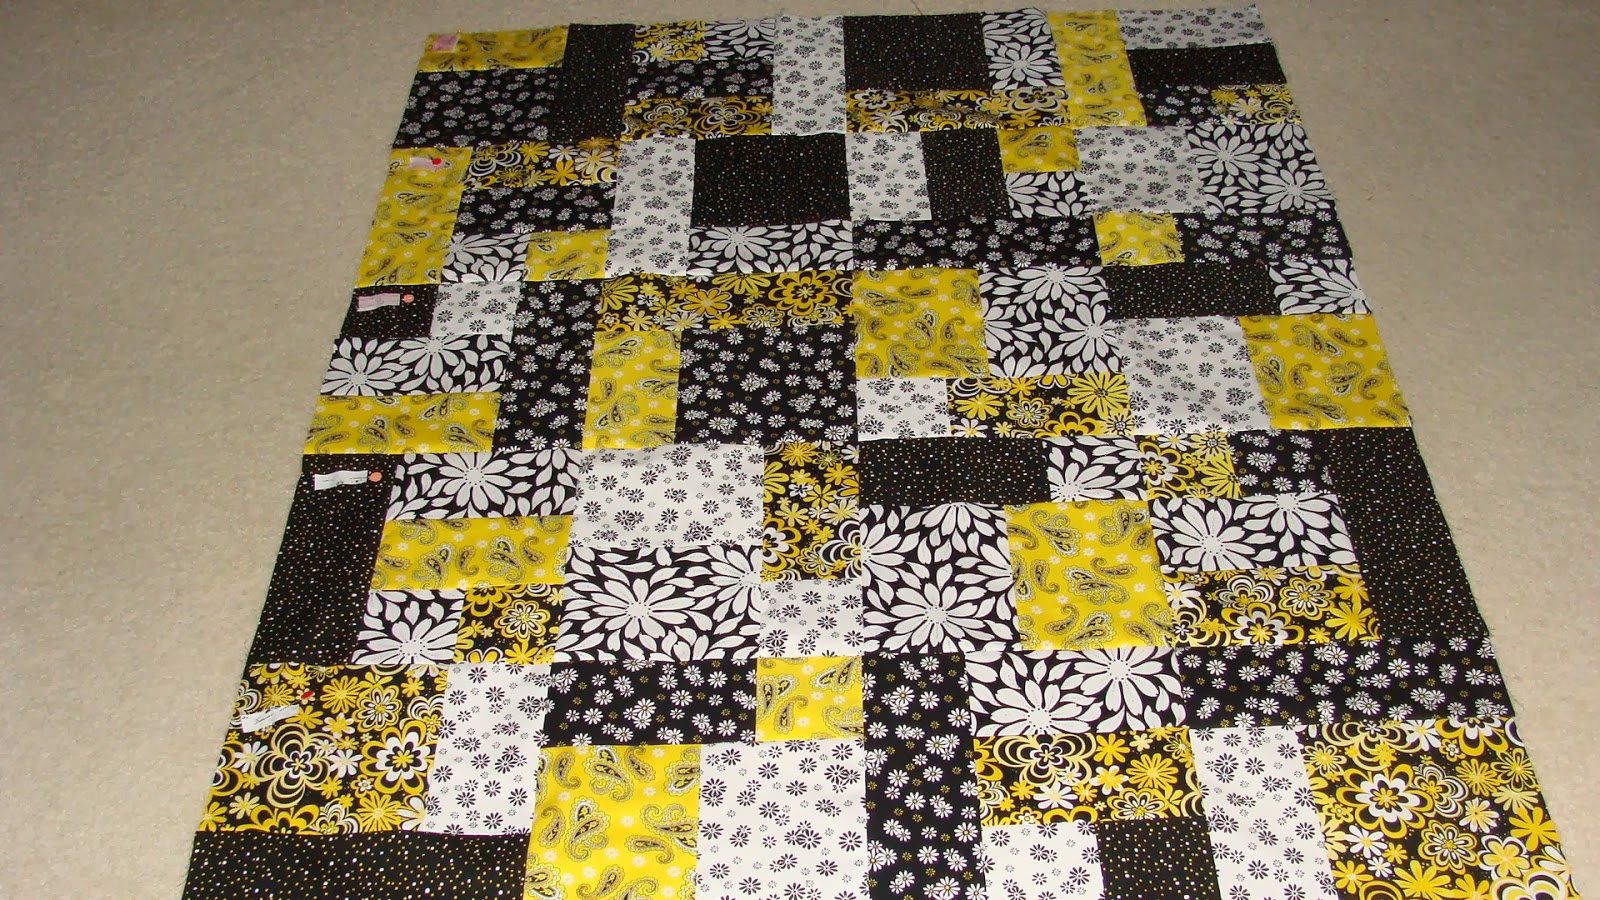 cinnamon holiday workshop: Yellow Brick Road quilt blocks : yellow brick road quilt instructions - Adamdwight.com